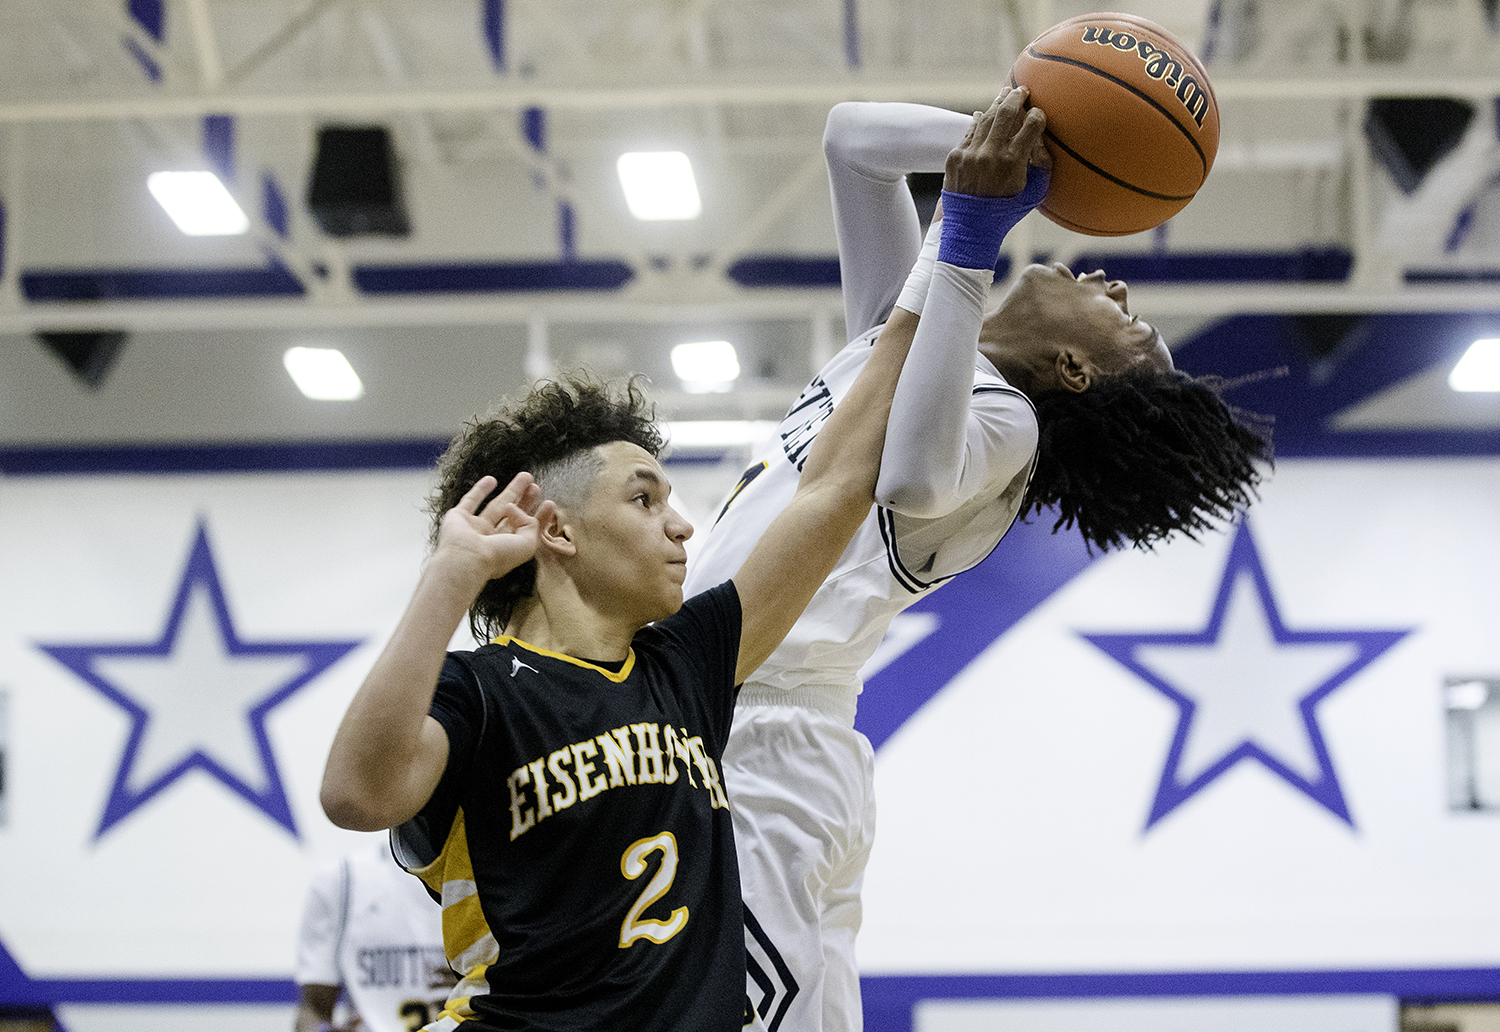 Eisenhower's Cameron Rowe fouls Southeast's Terrion Murdix during the MacArthur 3A Regional Wednesday, Feb. 27, 2018. [Ted Schurter/The State Journal-Register]